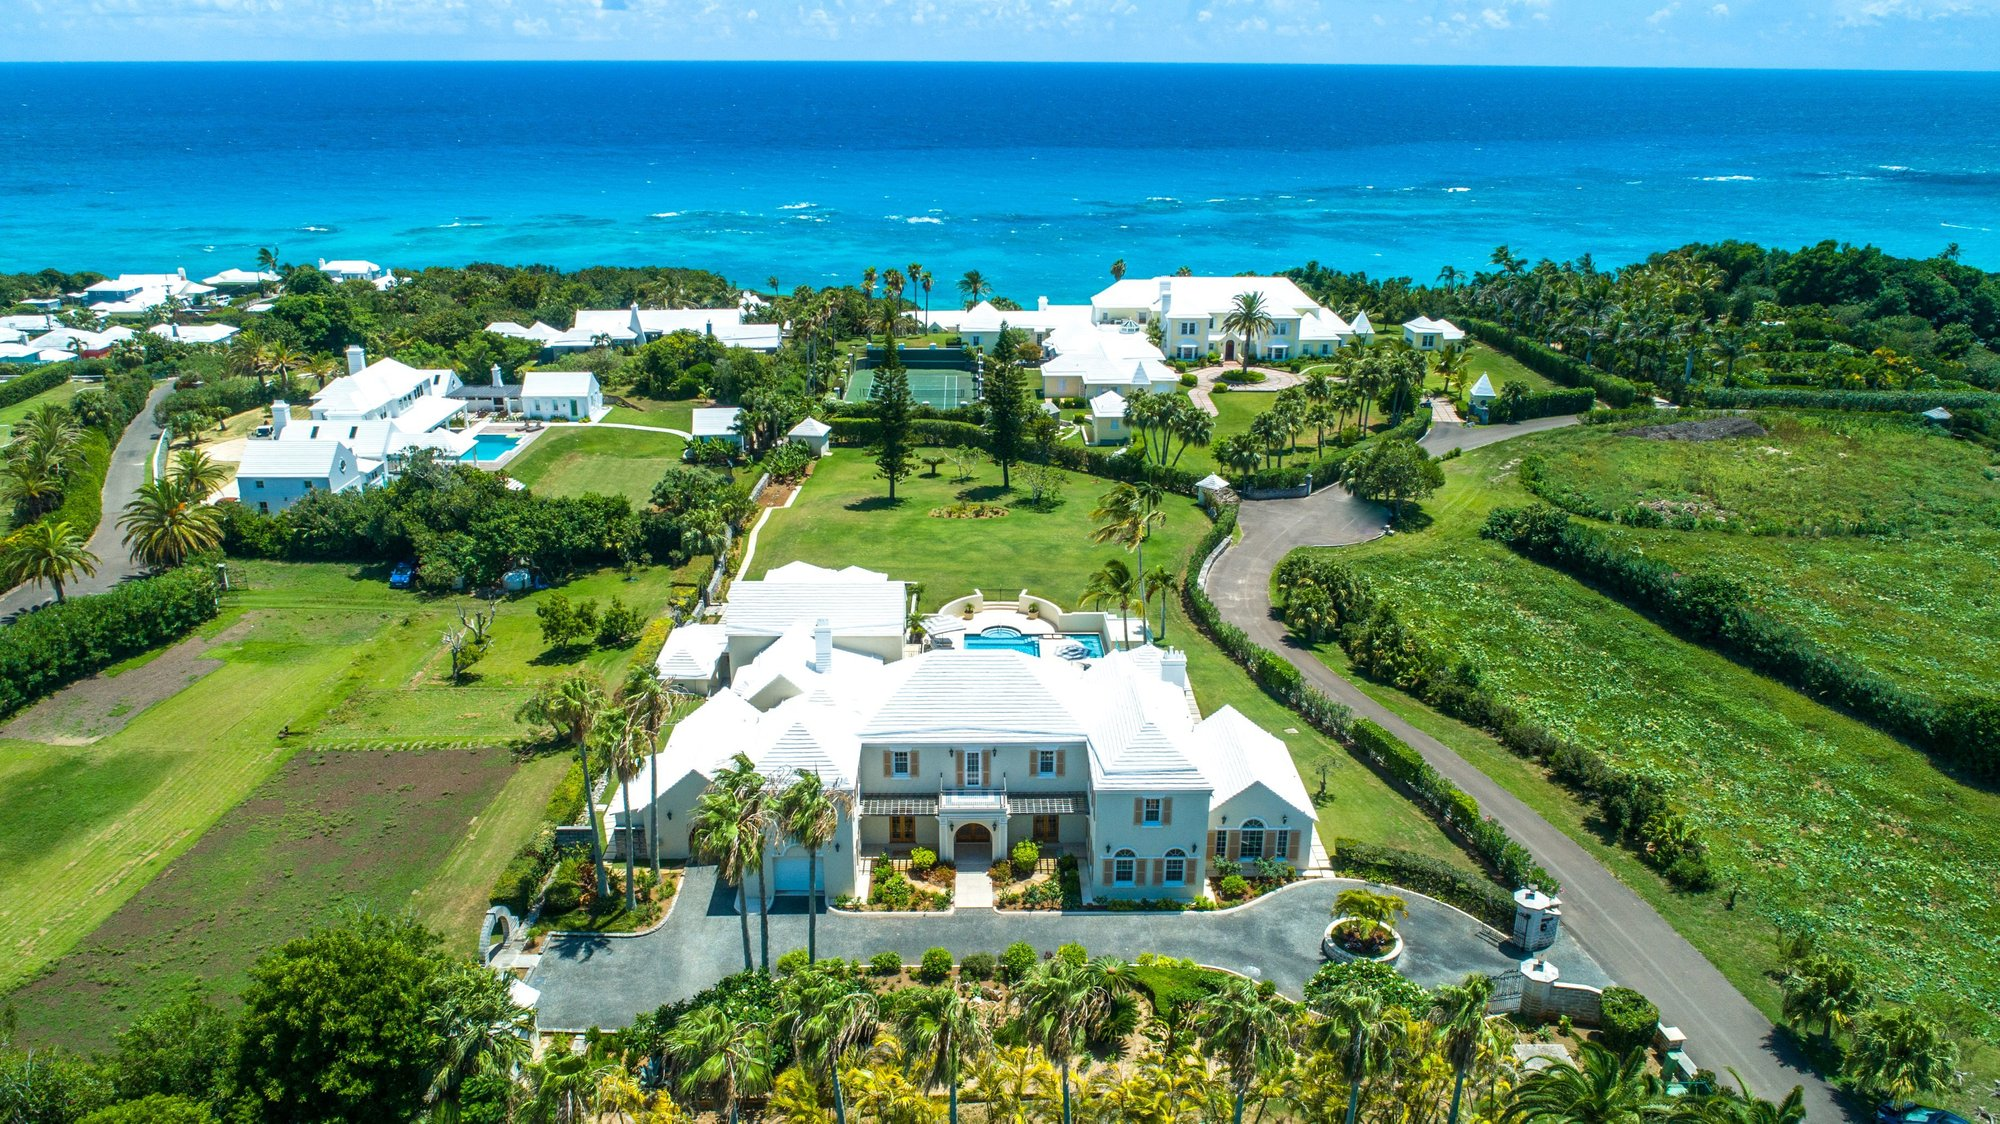 House in Paget, Paget Parish, Bermuda 1